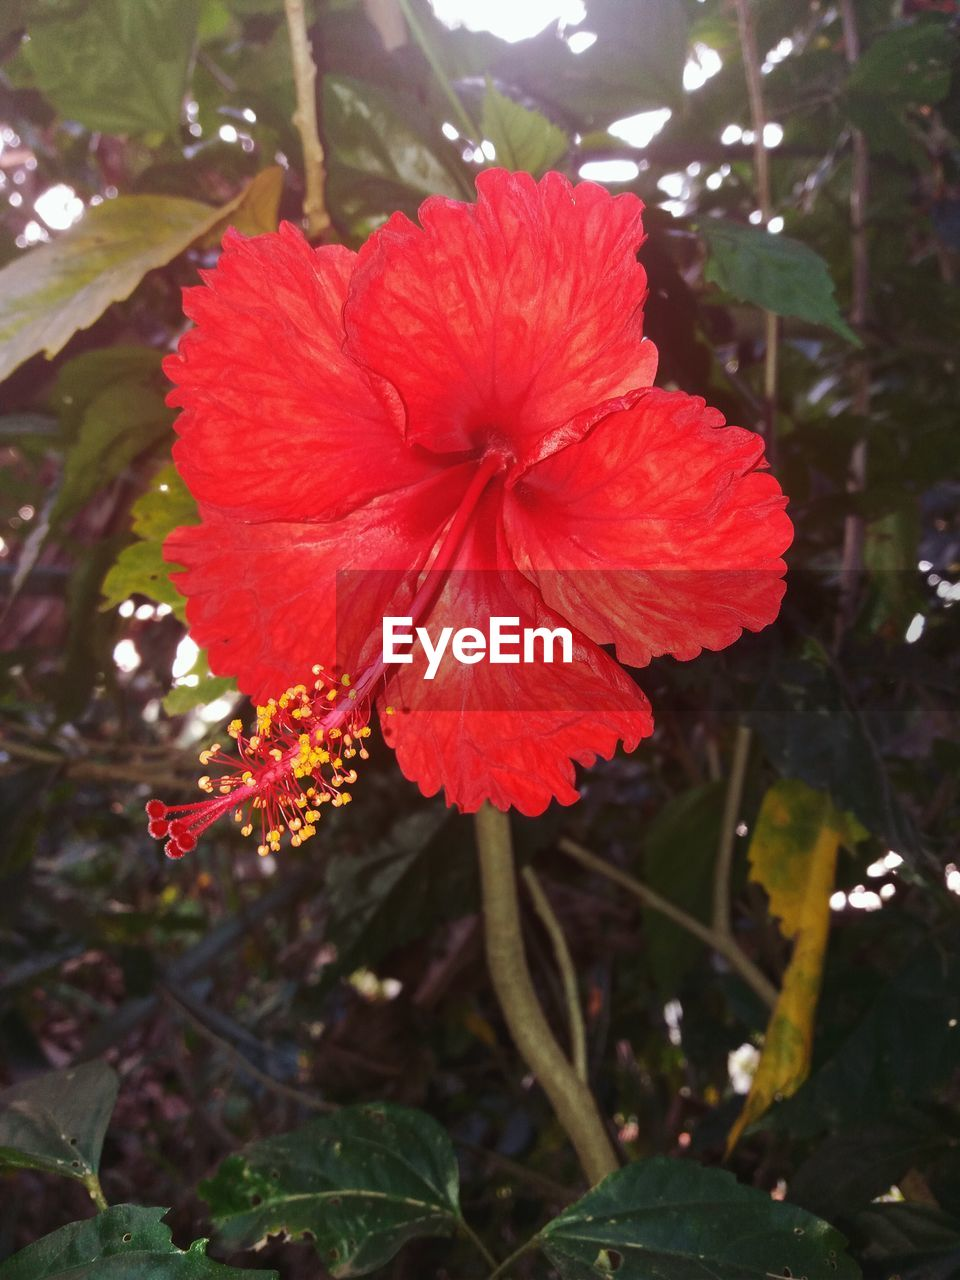 flower, growth, fragility, red, nature, beauty in nature, petal, flower head, freshness, plant, day, no people, outdoors, hibiscus, blooming, close-up, water